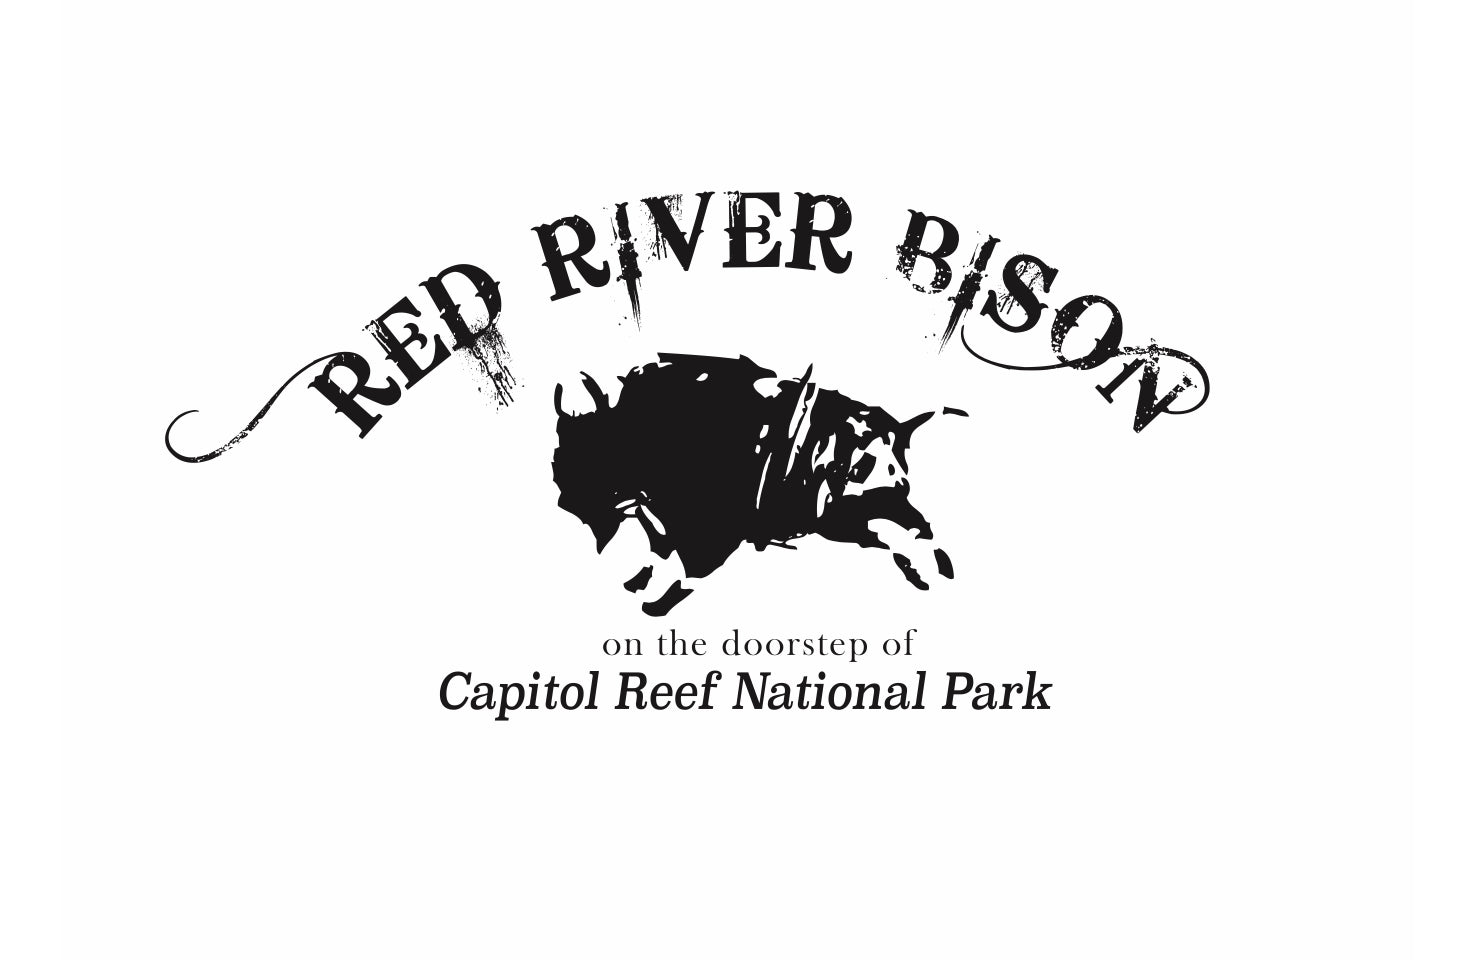 Red River Bison Brisket